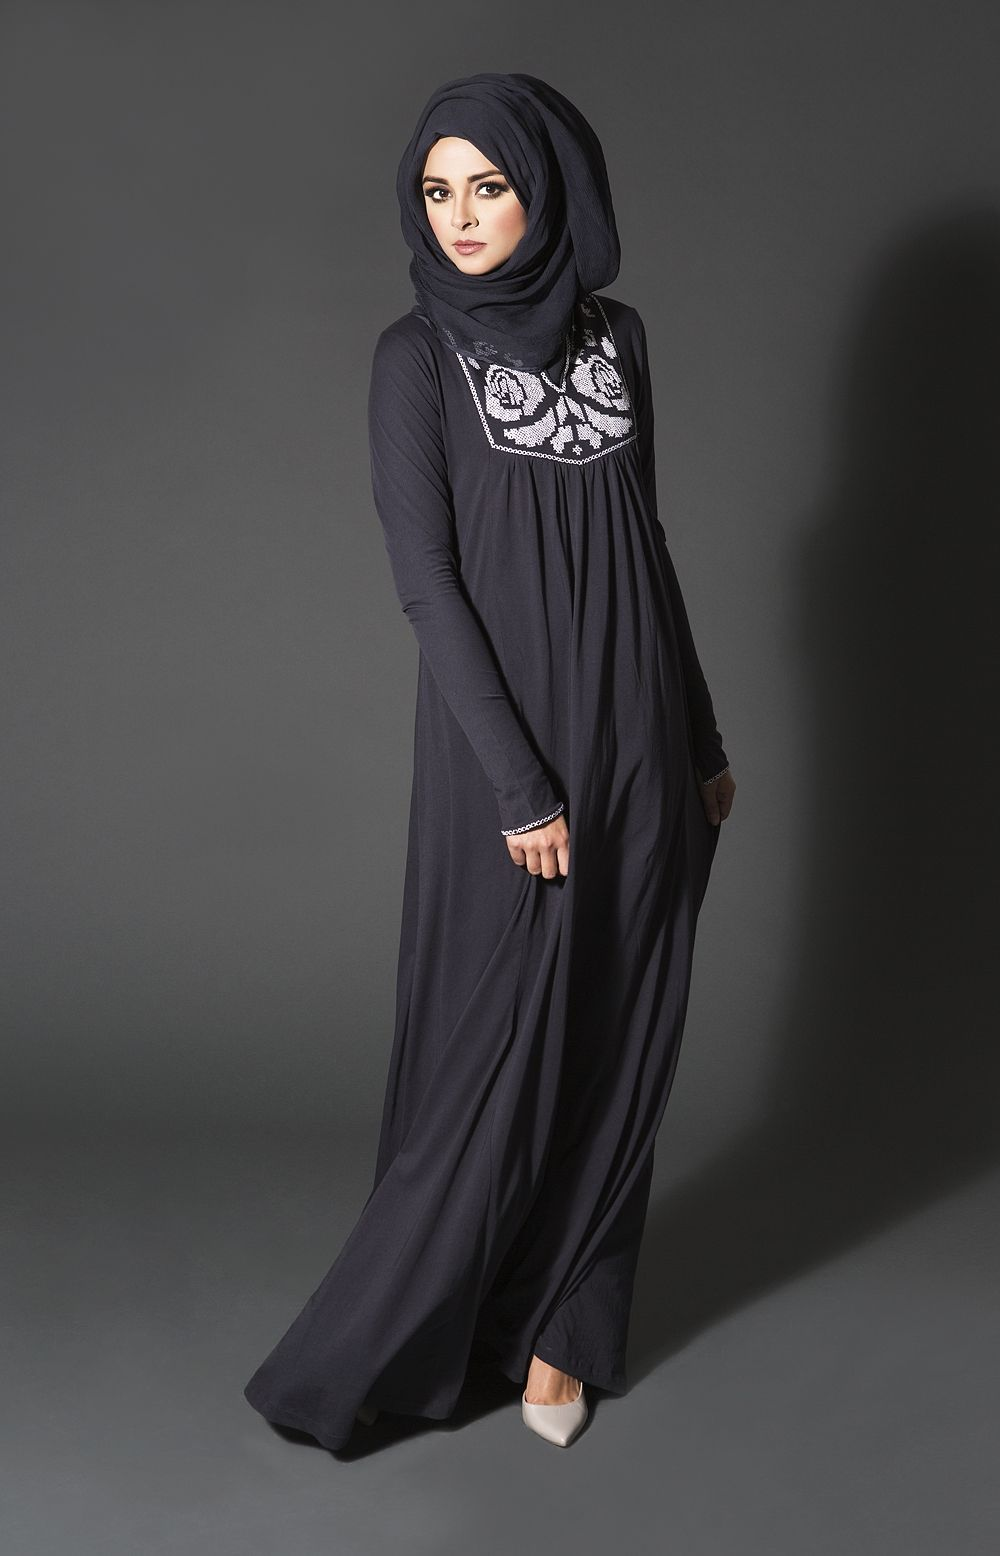 aab Abaya Holic abaya Stitch Cross Rose embroideryedit tqxwTHwEnZ